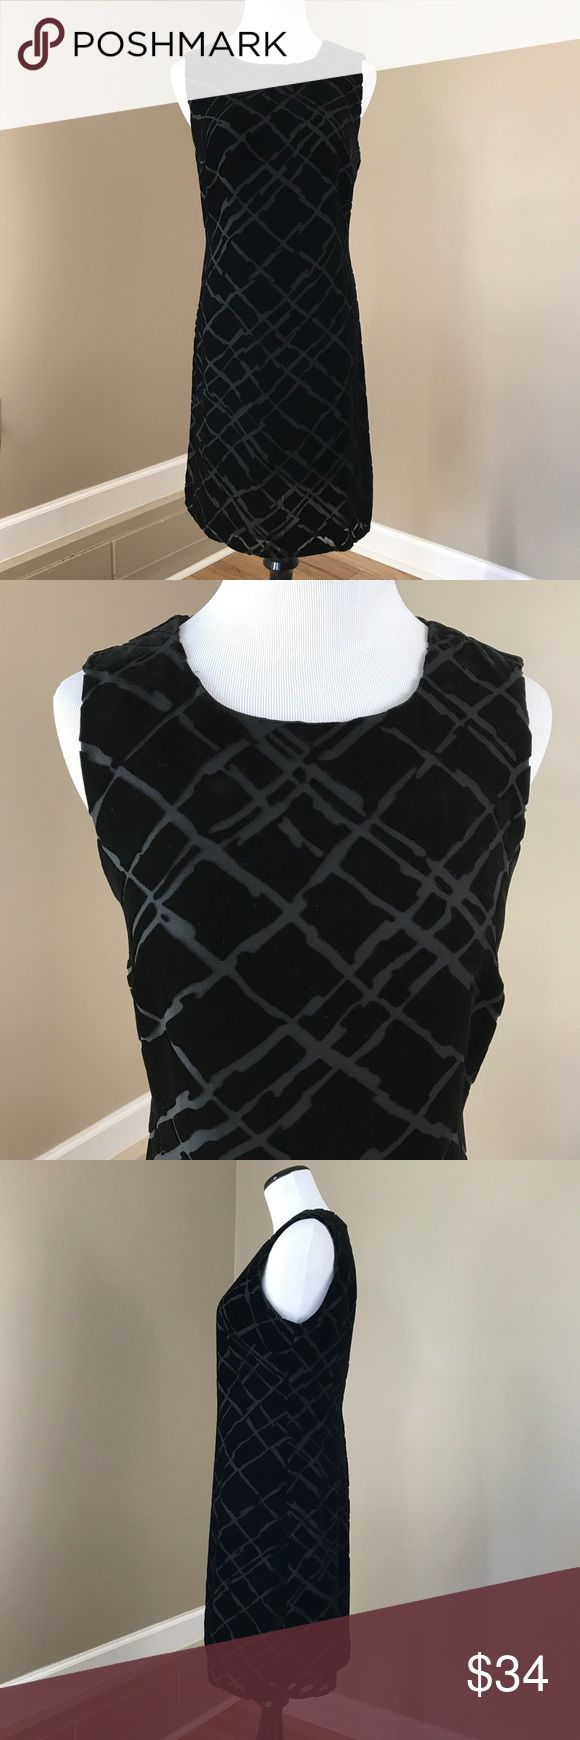 "Vintage Tessuto Black Sleeveless Velvet Dress Made of Rayon and silk. This dress is great for a holiday party. Can be dressed up even more with. Statement necklace. Geometric pattern. Size unknown. Best guess is a medium. 36"" bust. 30"" waist. 37"" hips. 35"" long. Very good condition. Vintage Dresses Midi"